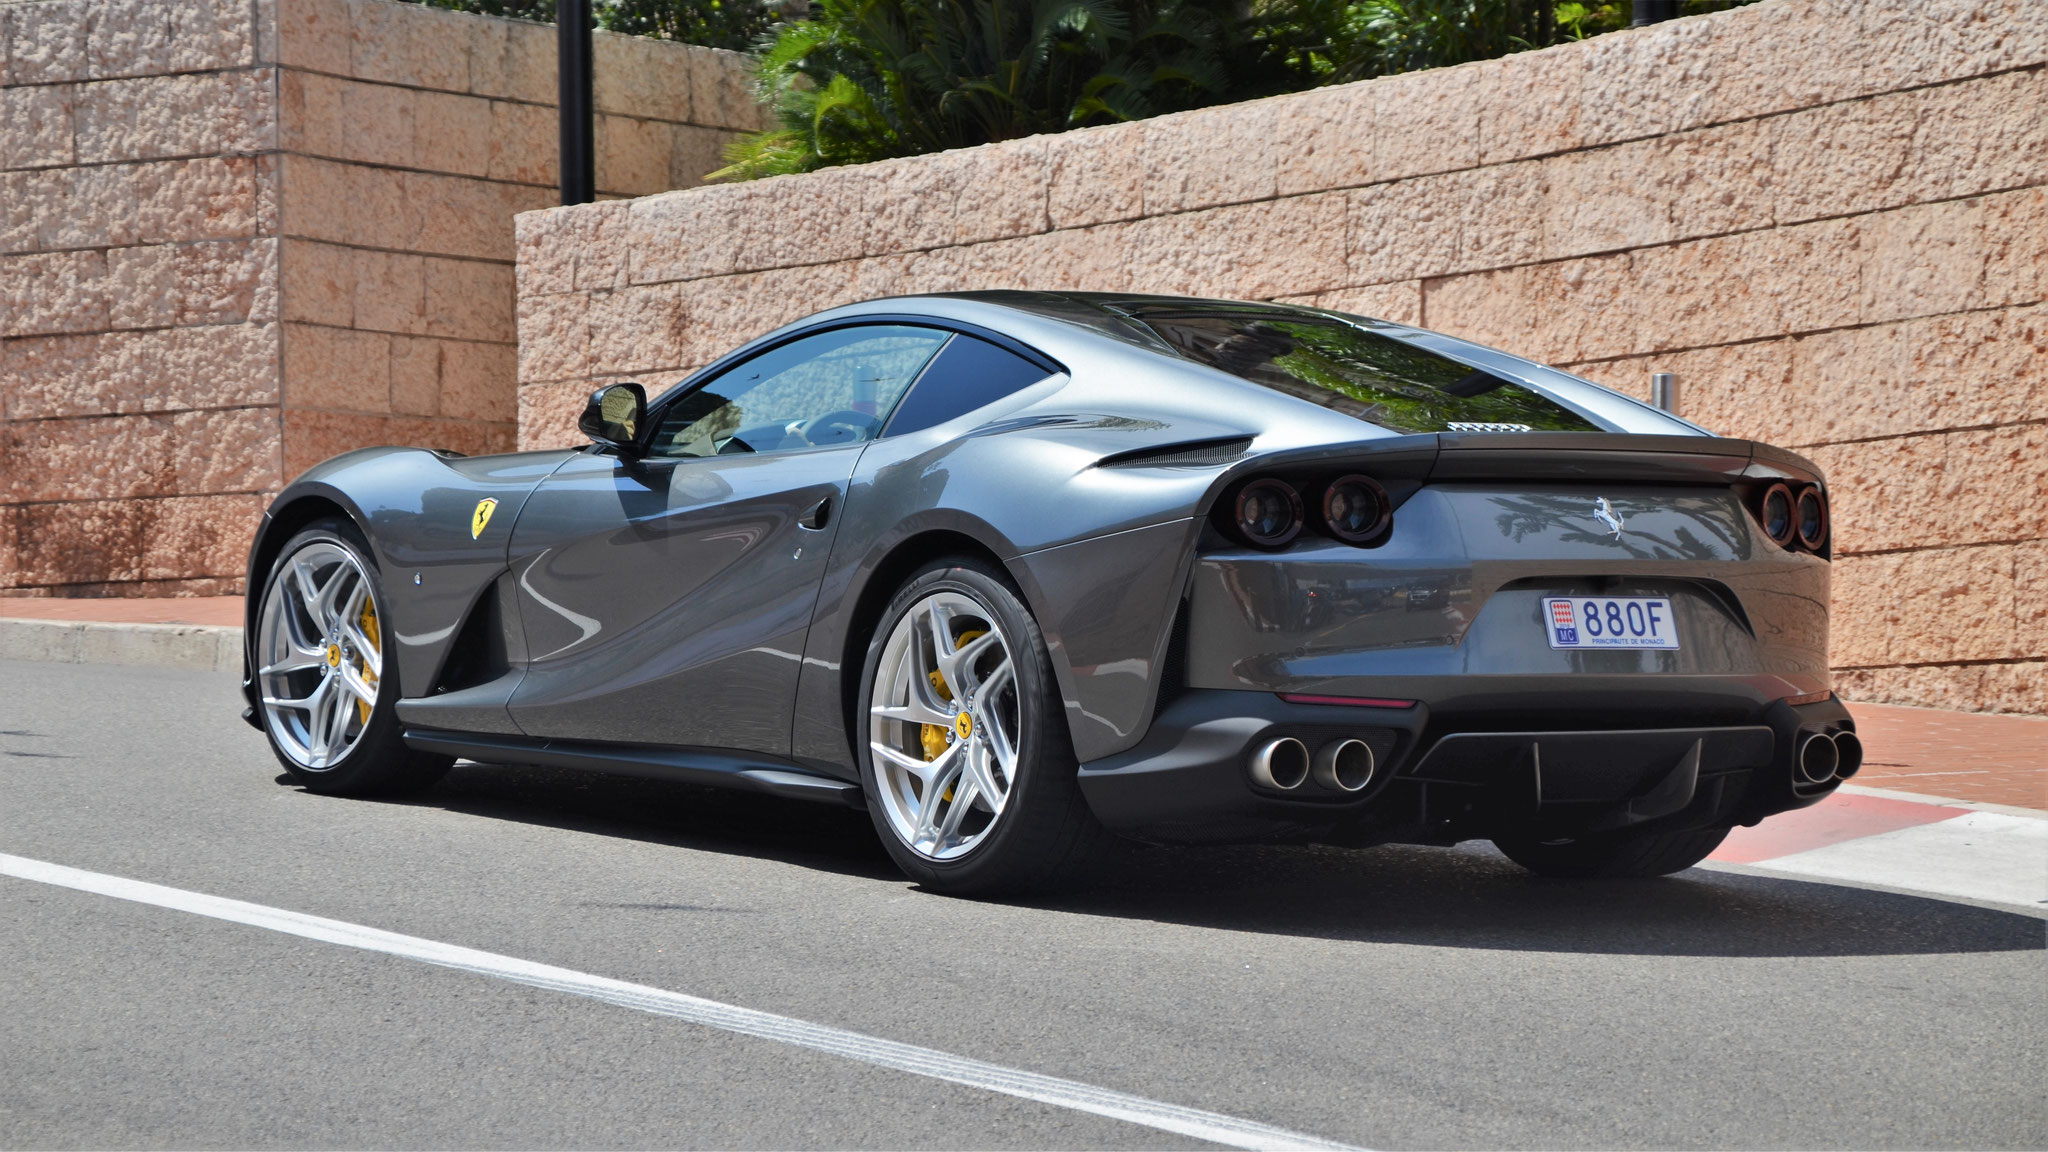 Ferrari 812 Superfast - 880F (MC)